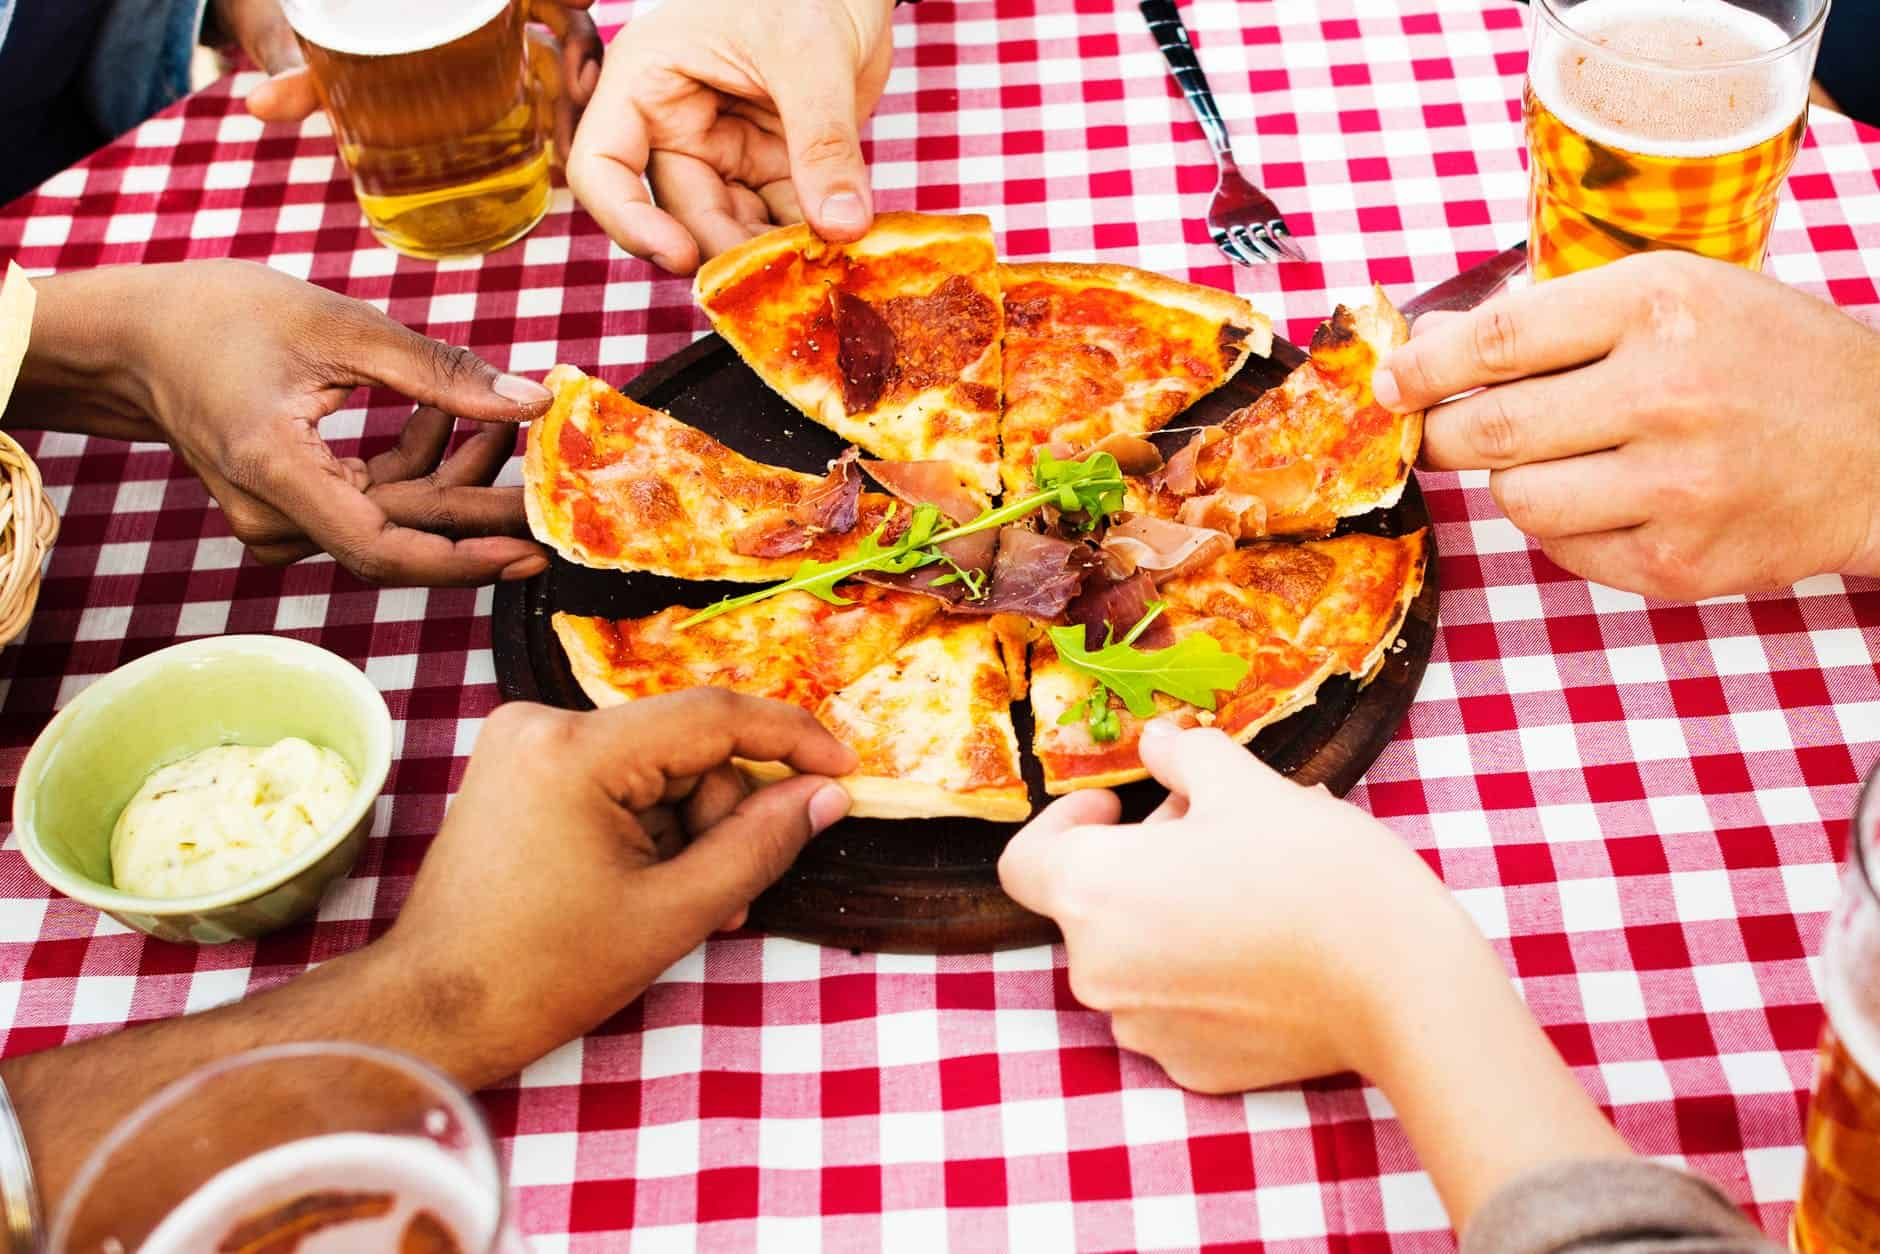 image contains a pizza being shared